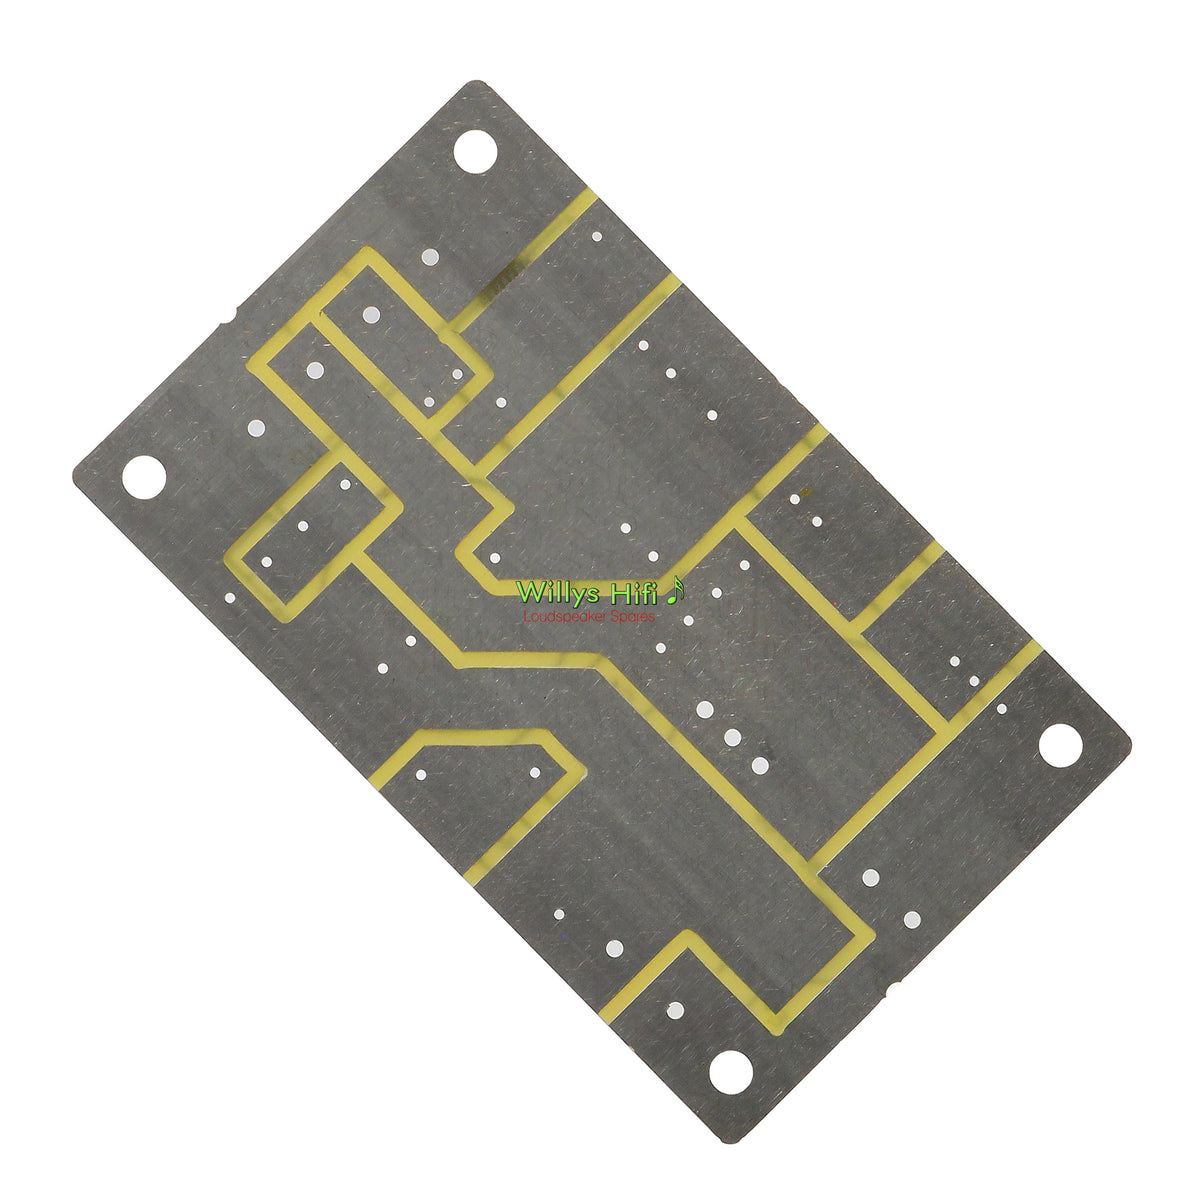 Intertechnik 2 Way Speaker Crossover PCB 1342763 - rear view